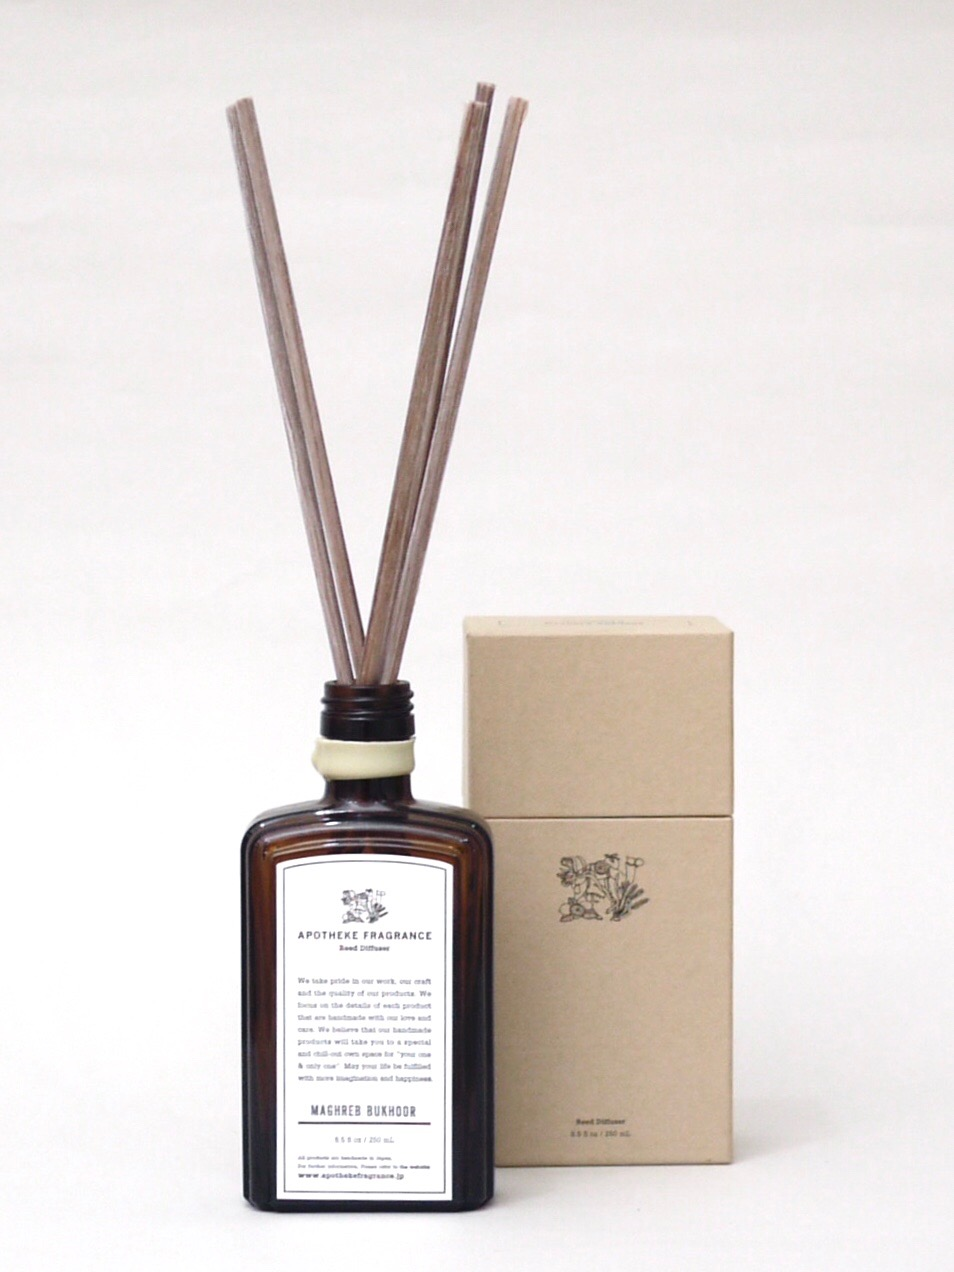 APOTHEKE FRAGRANCE Reed Diffuser